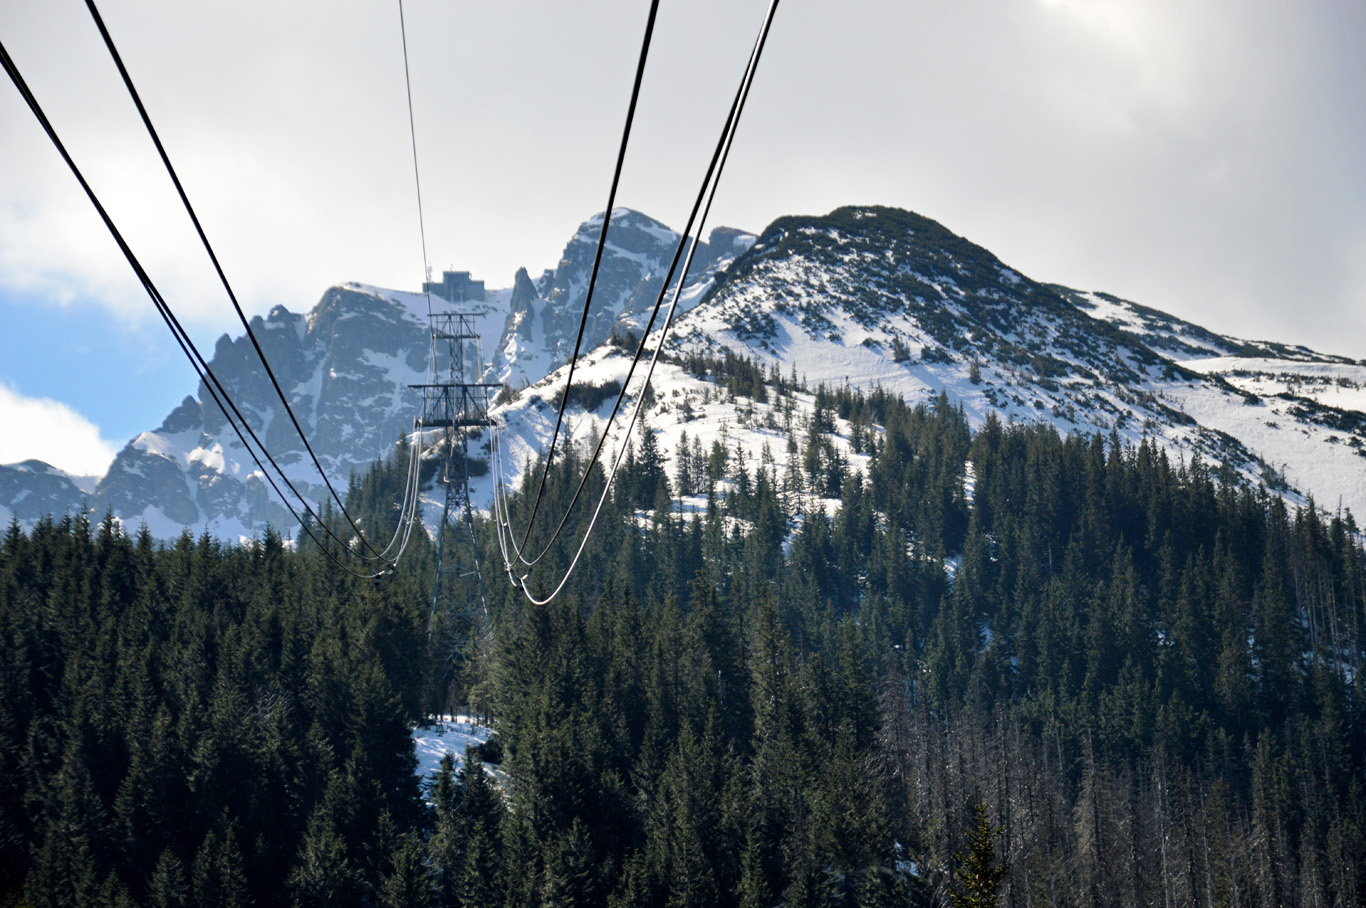 View from the cable car towards Kasprowy Wierch